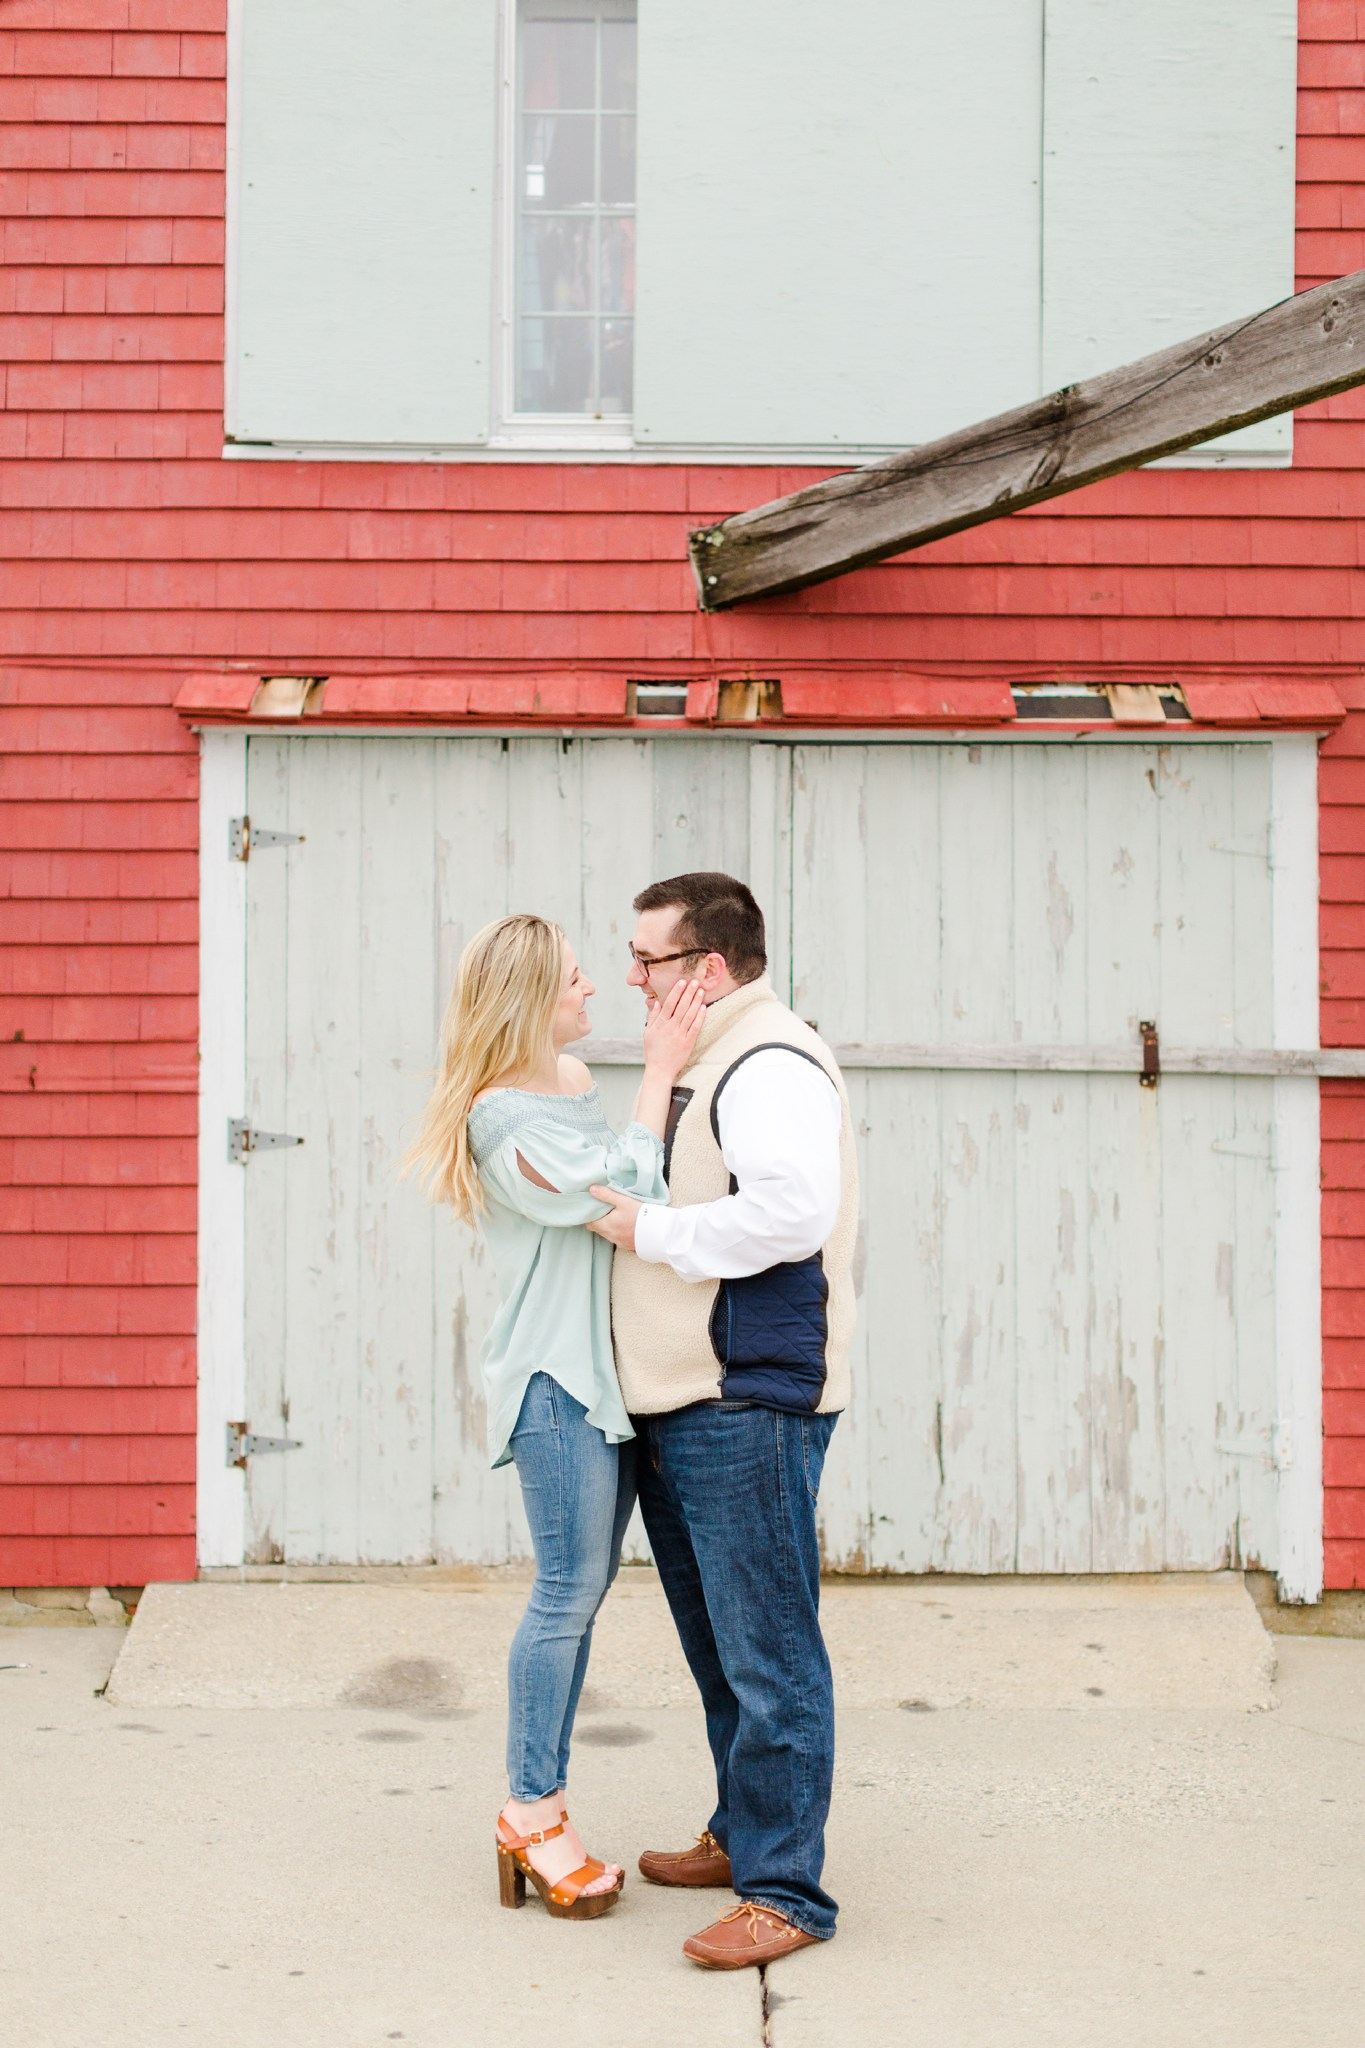 rockport_MA_engagement_session_Deborah_Zoe_Photography_00162.JPG